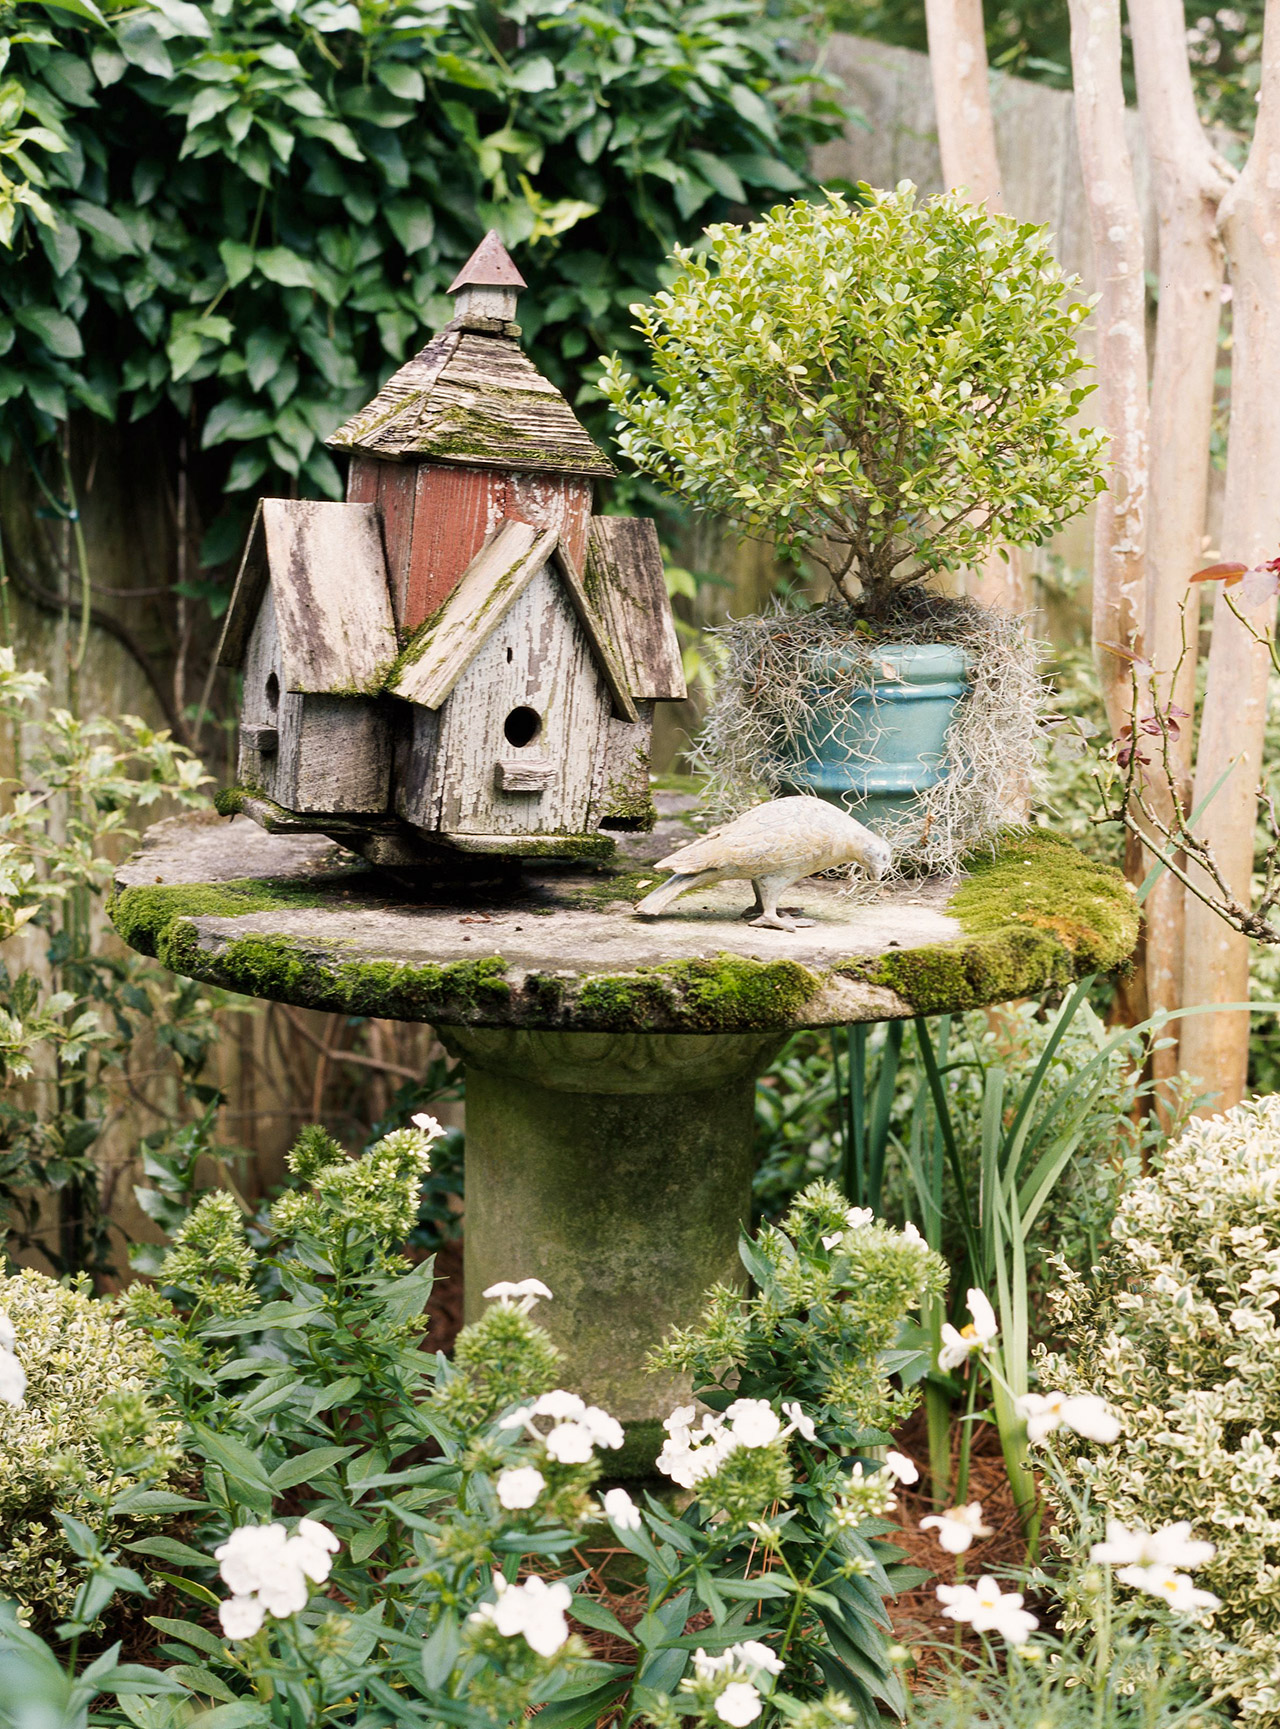 bird house and decor in flower garden